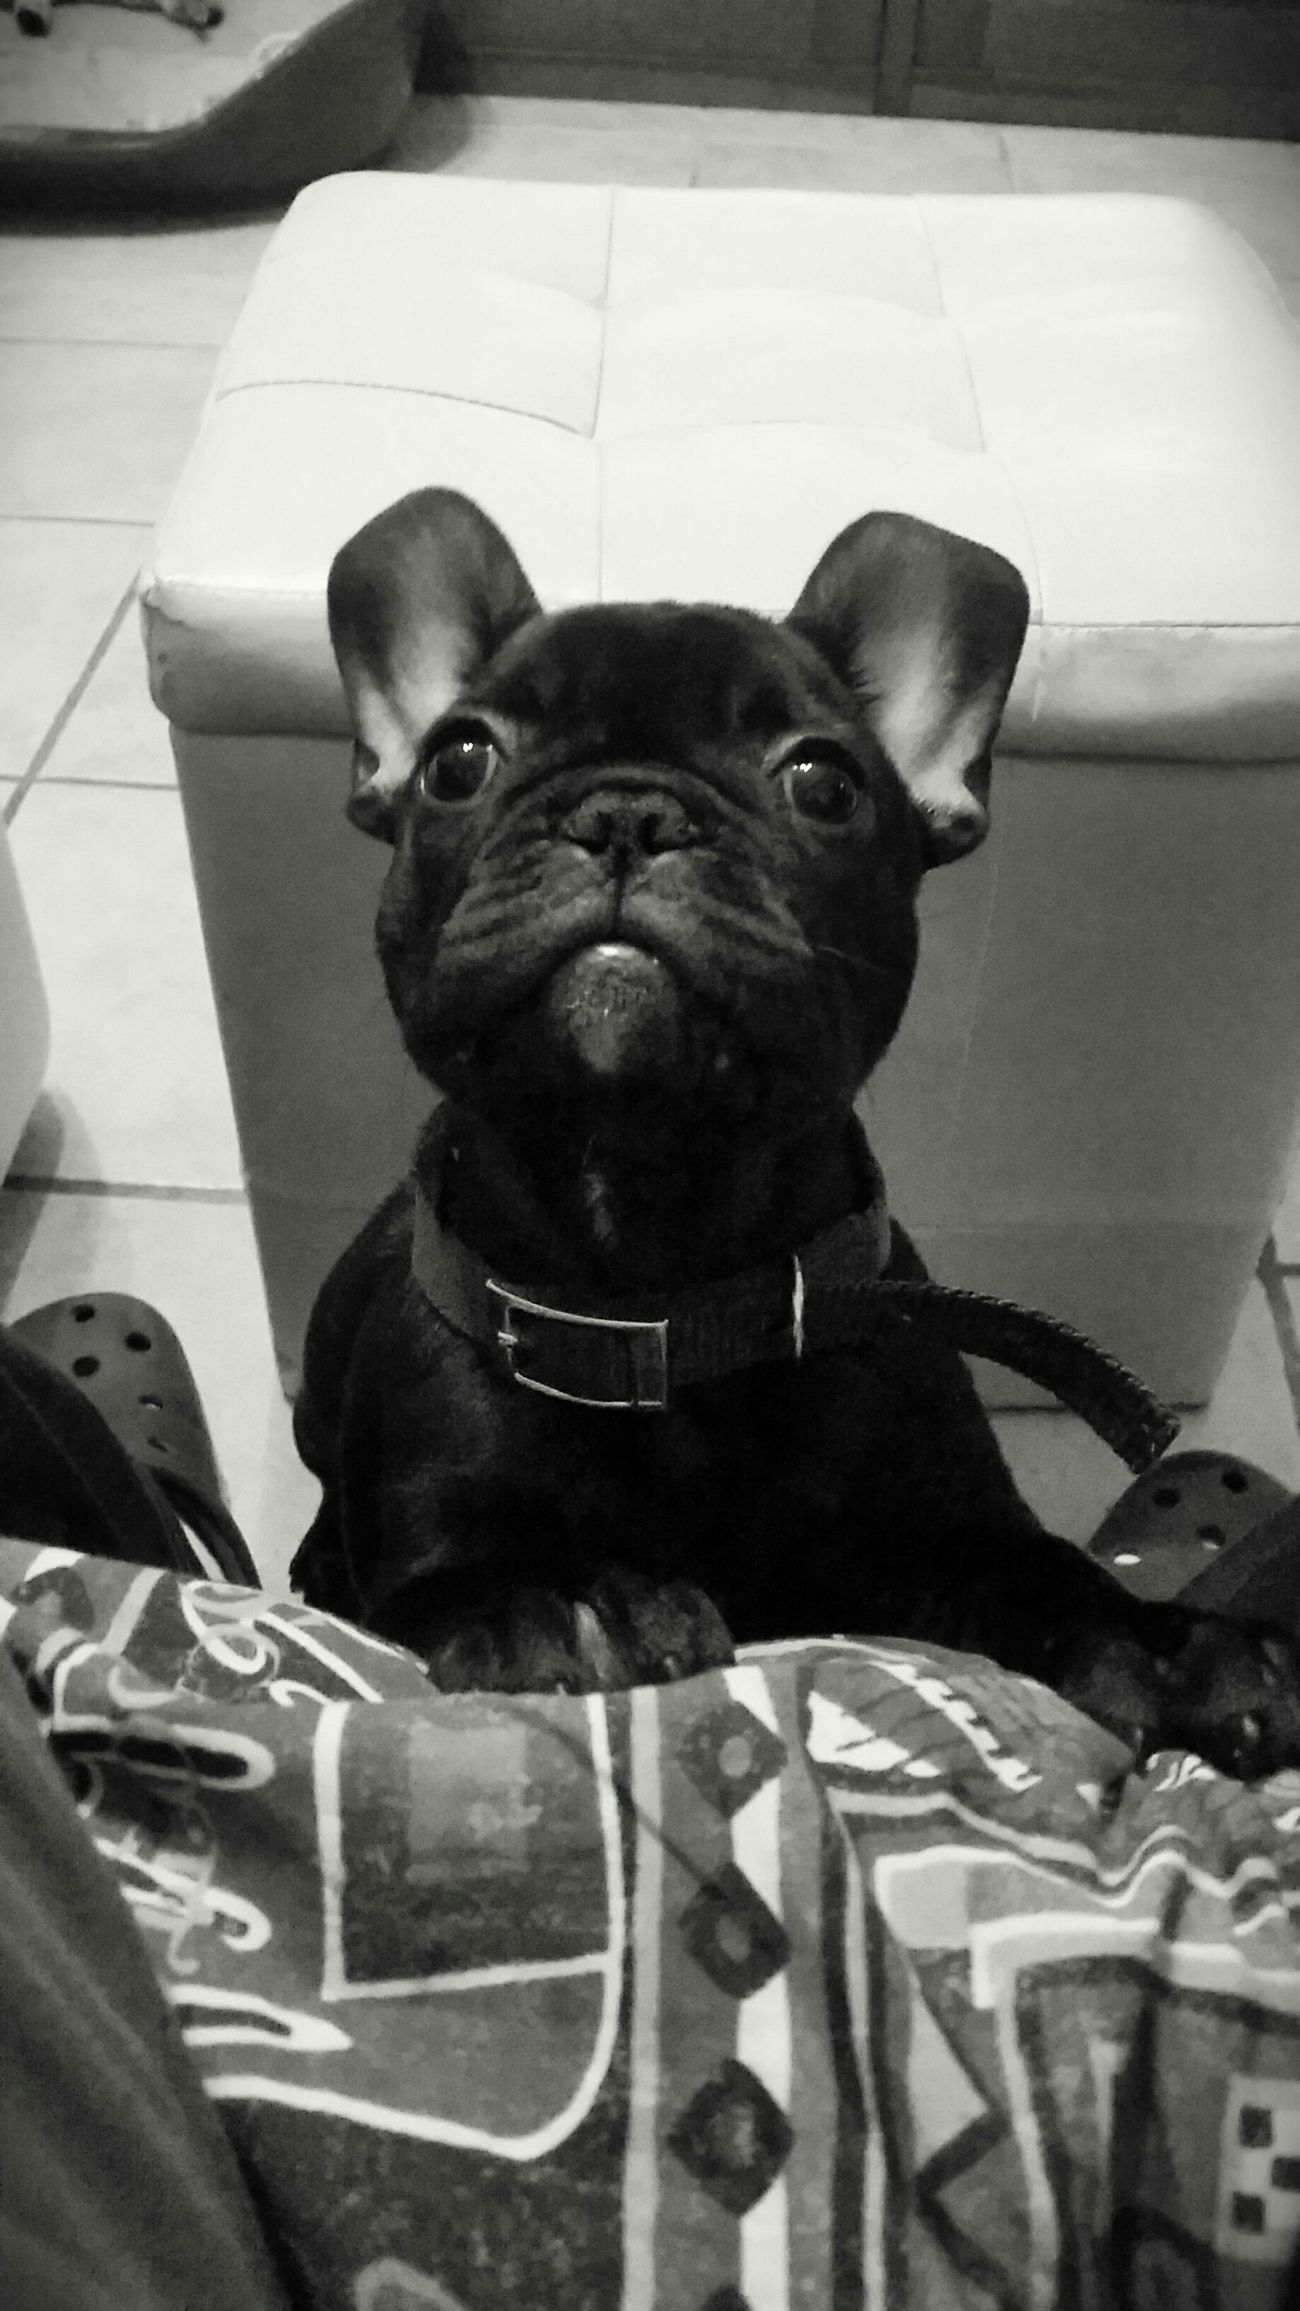 Dragon Bouledogue Francais Frenchbulldog Bulldogfrances Bouledoguefrancais French Bulldog My Dog I Love My Dog Dog ❤ Bulldog Francese Bouledogue Francese Piemonte